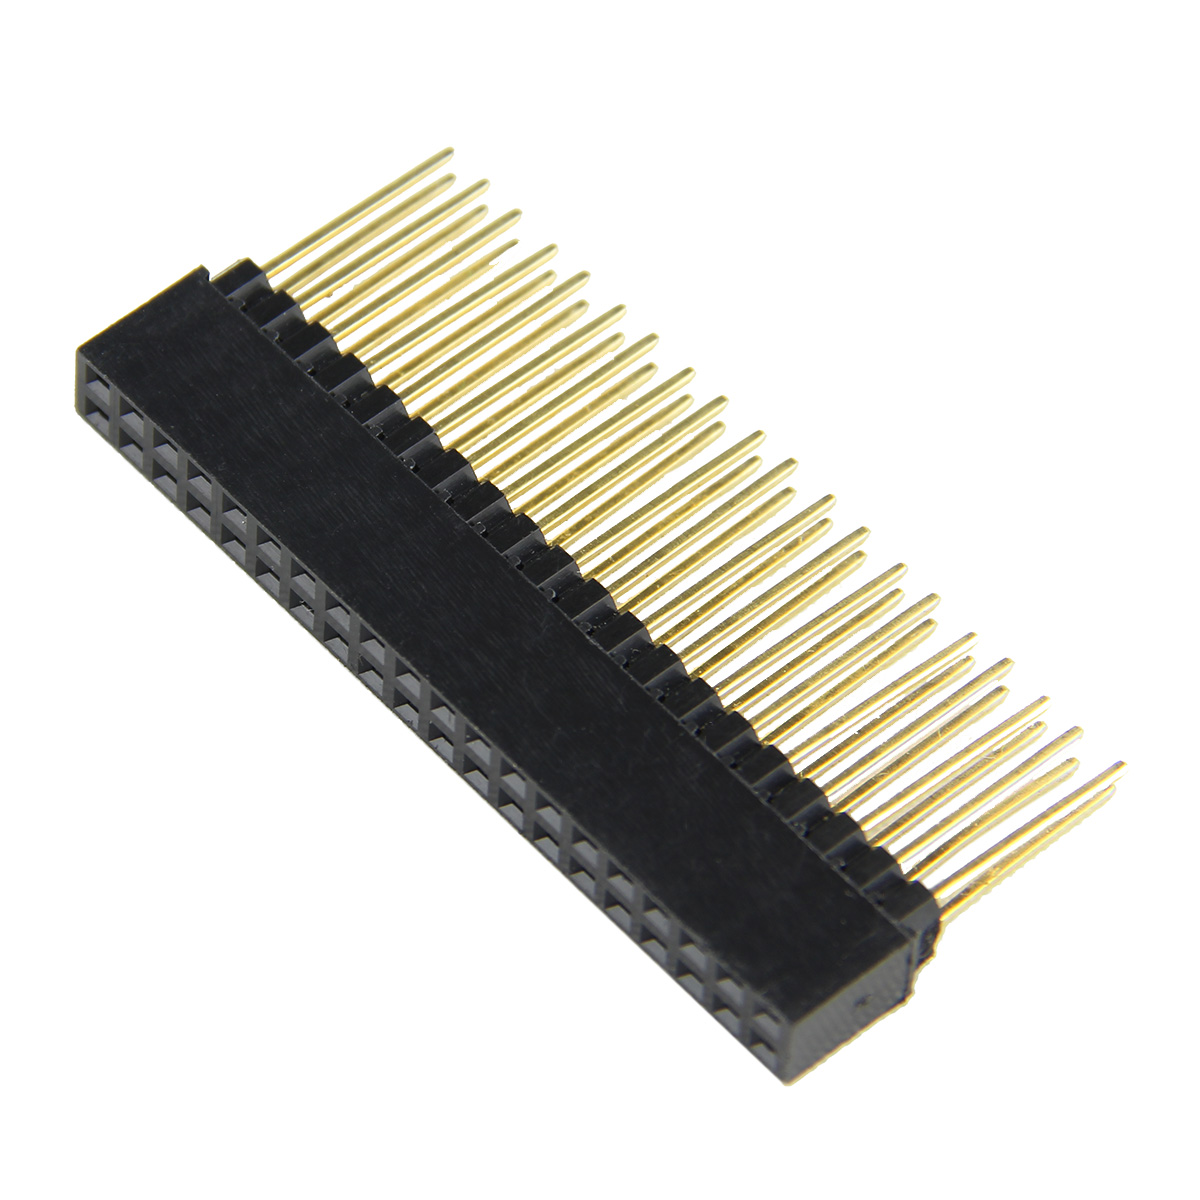 12MM 40Pin Female Stacking Header Connector For Raspberry Pi 2 Mode B& B+ New12MM 40Pin Female Stacking Header Connector For Raspberry Pi 2 Mode B& B+ New